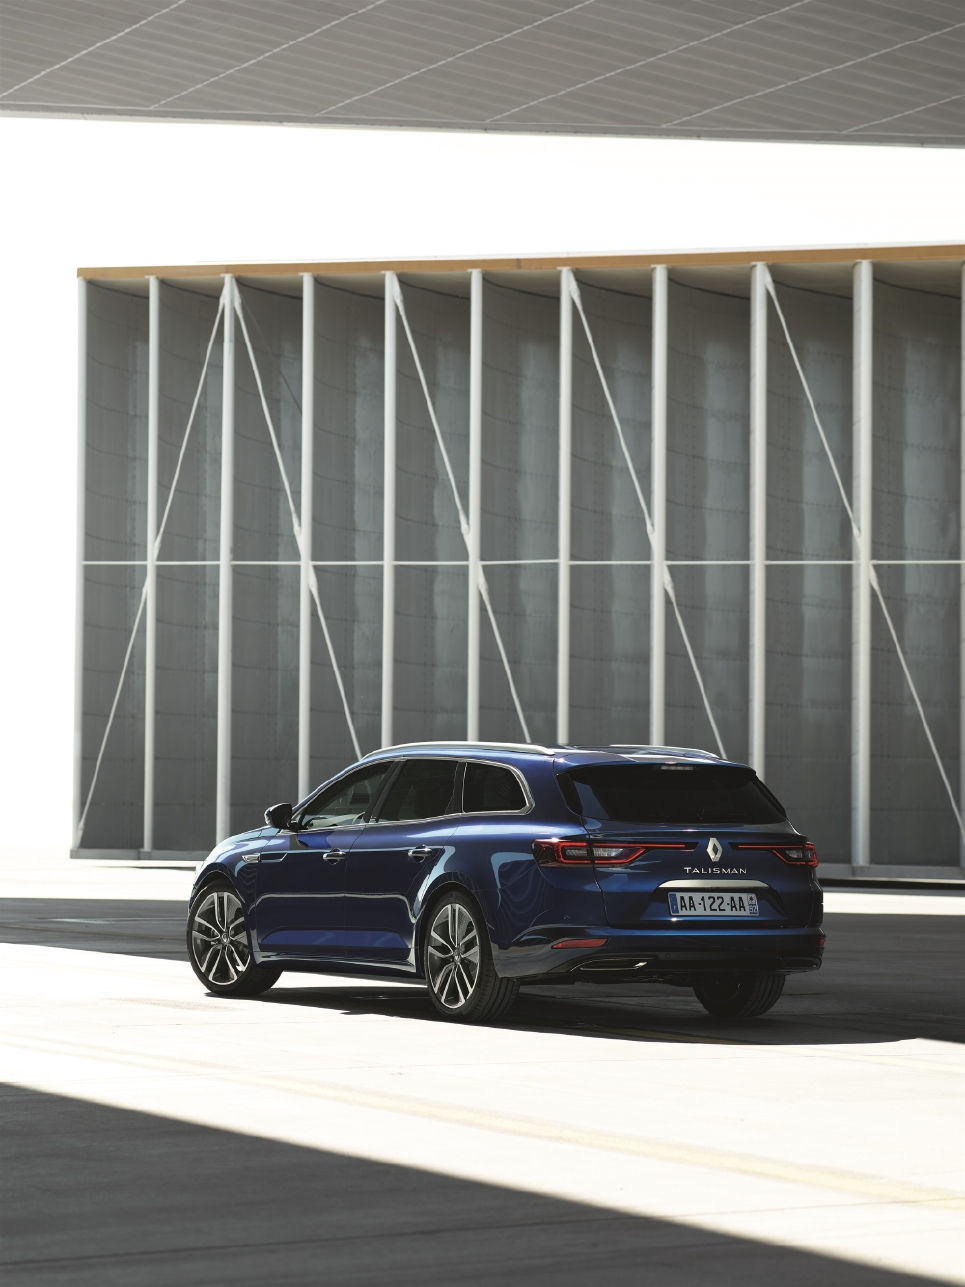 Un break Renault statutaire avec Talisman Estate - Photo n°7